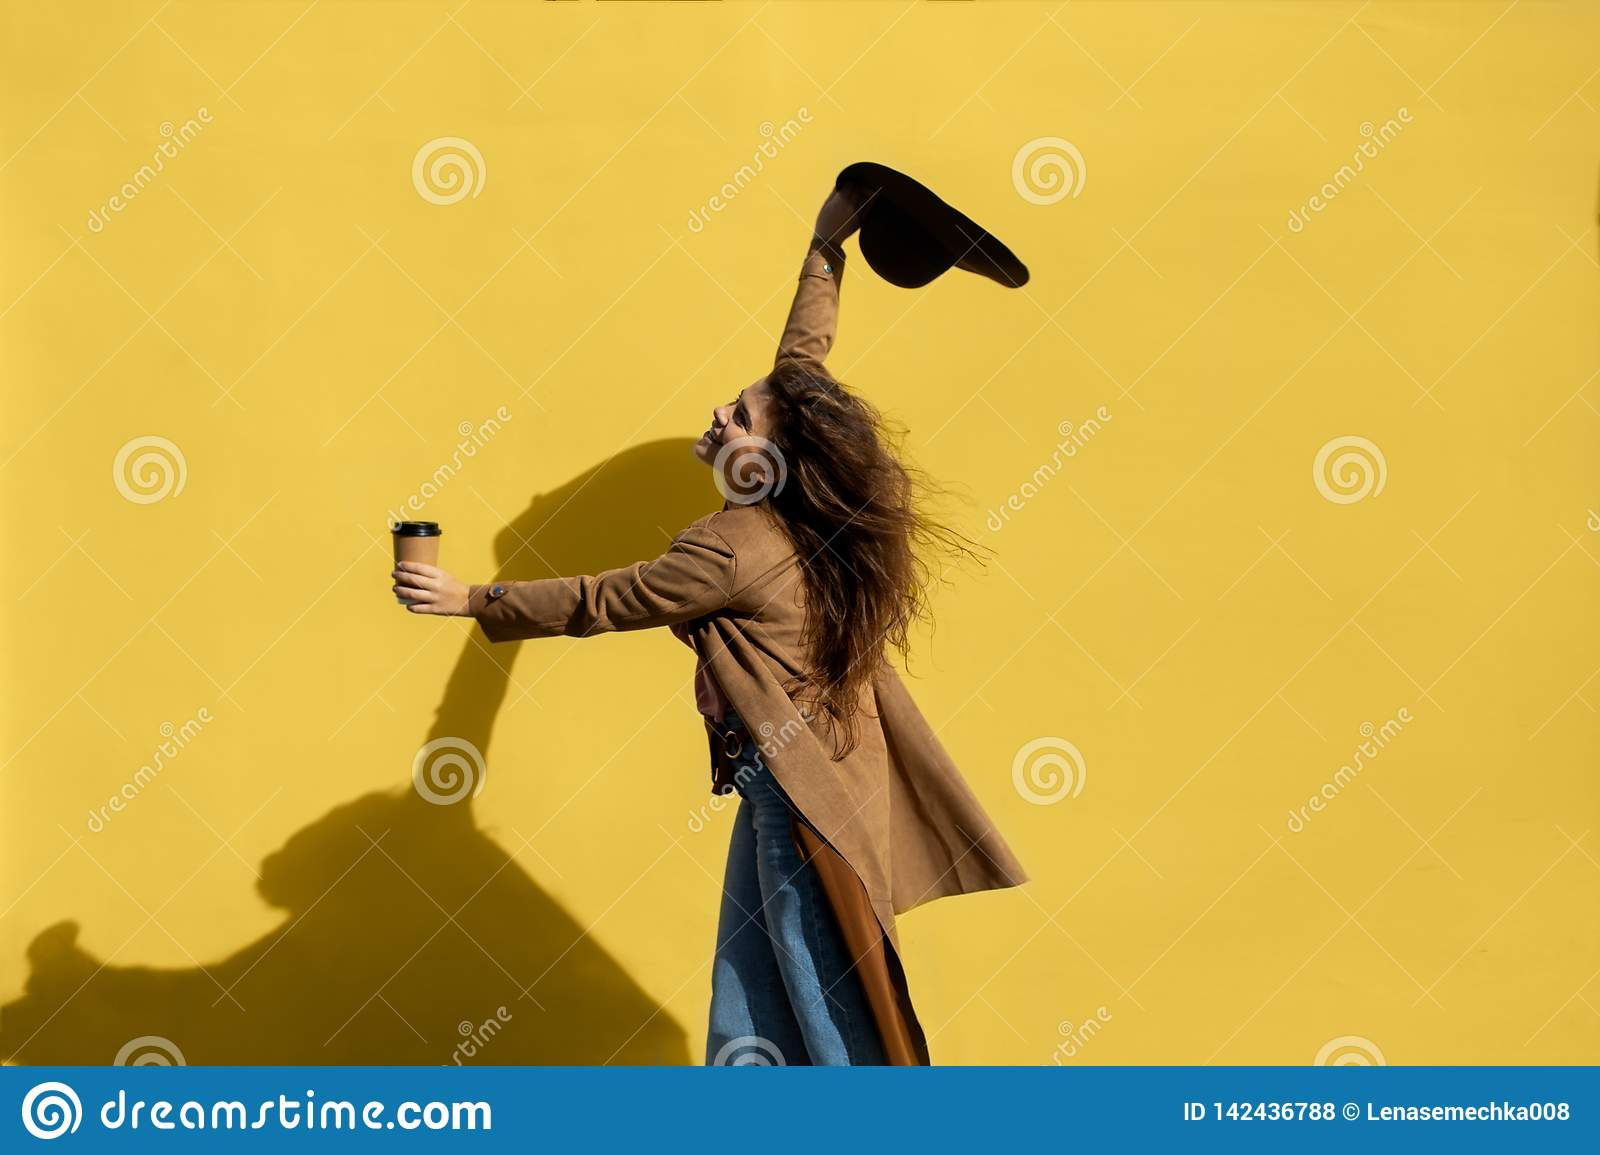 Girl with a cup of coffee on a sunny day near the yellow wall